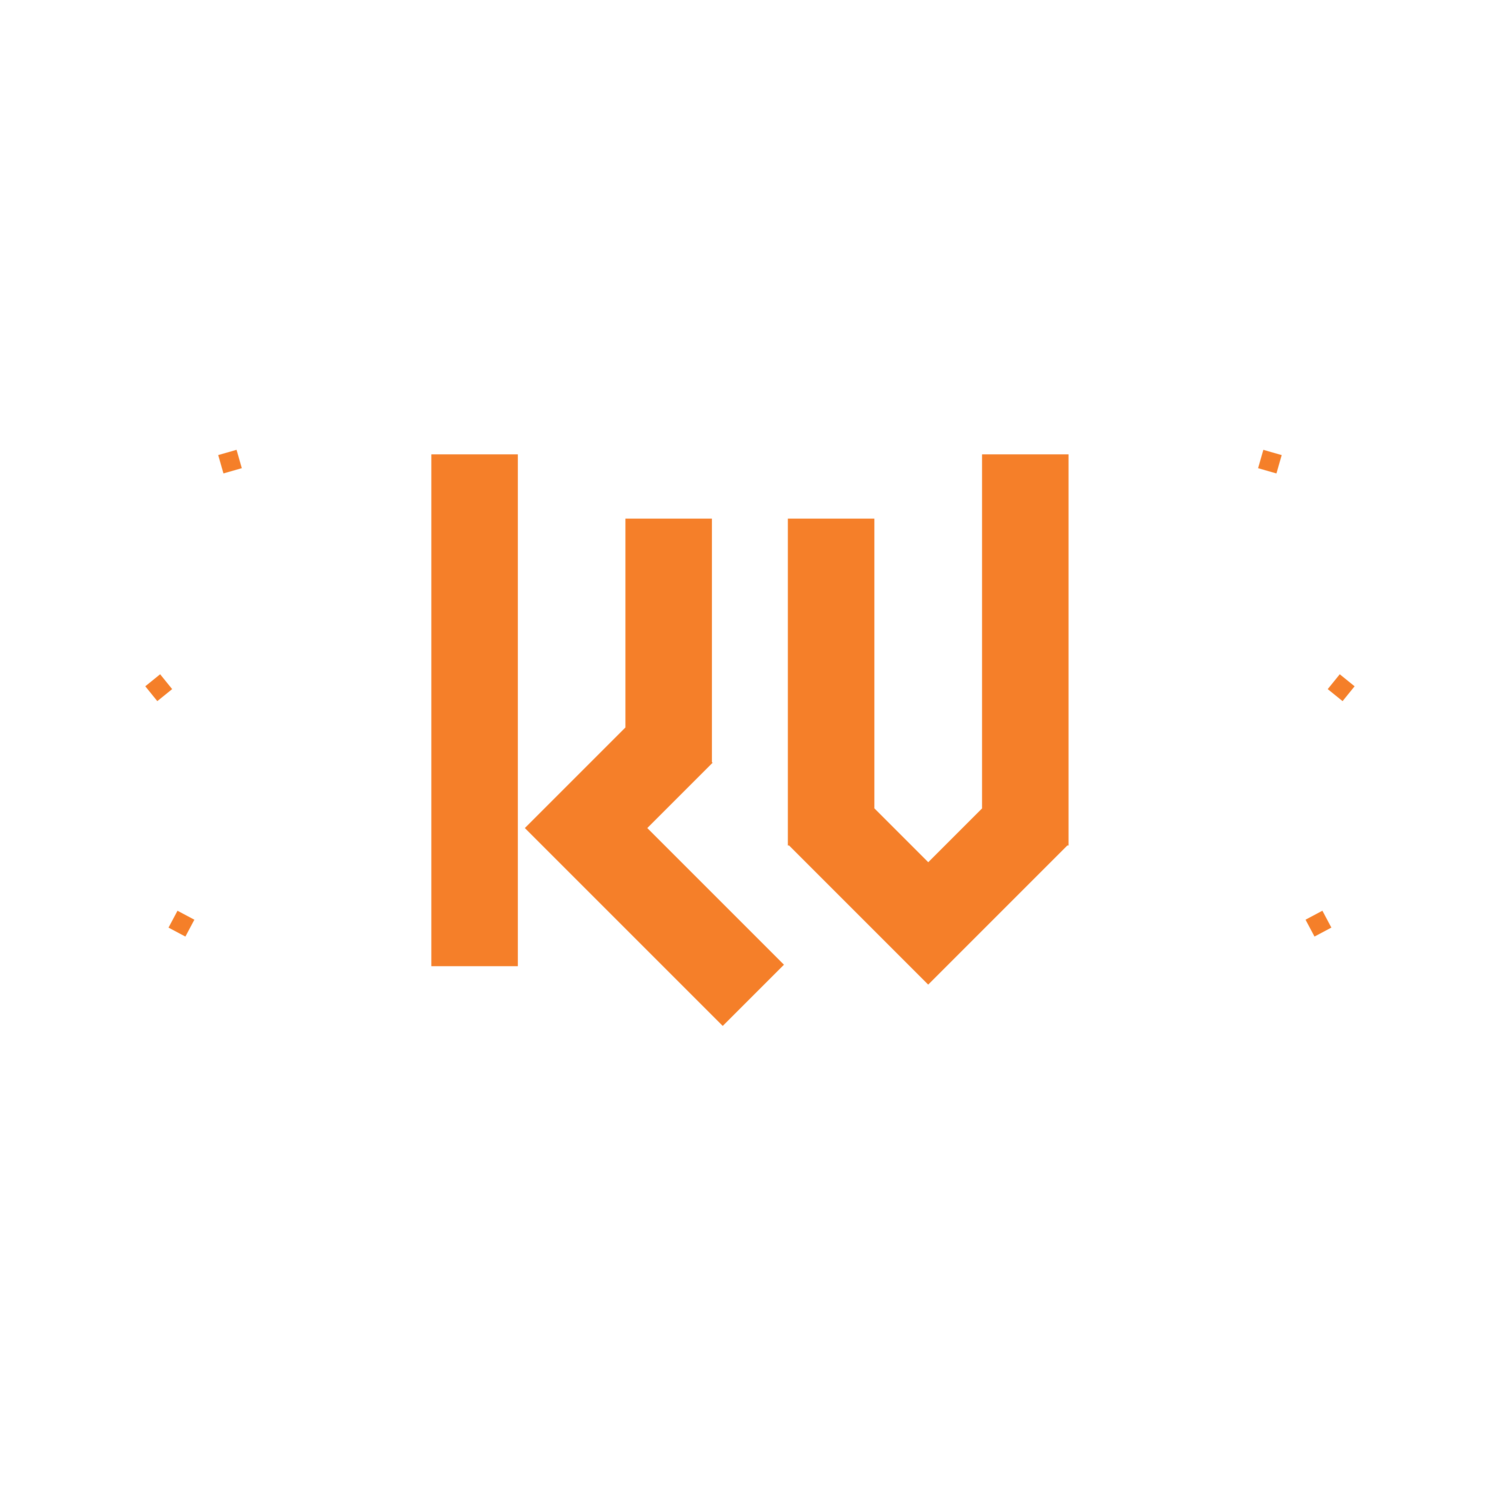 The Kiwi Viking